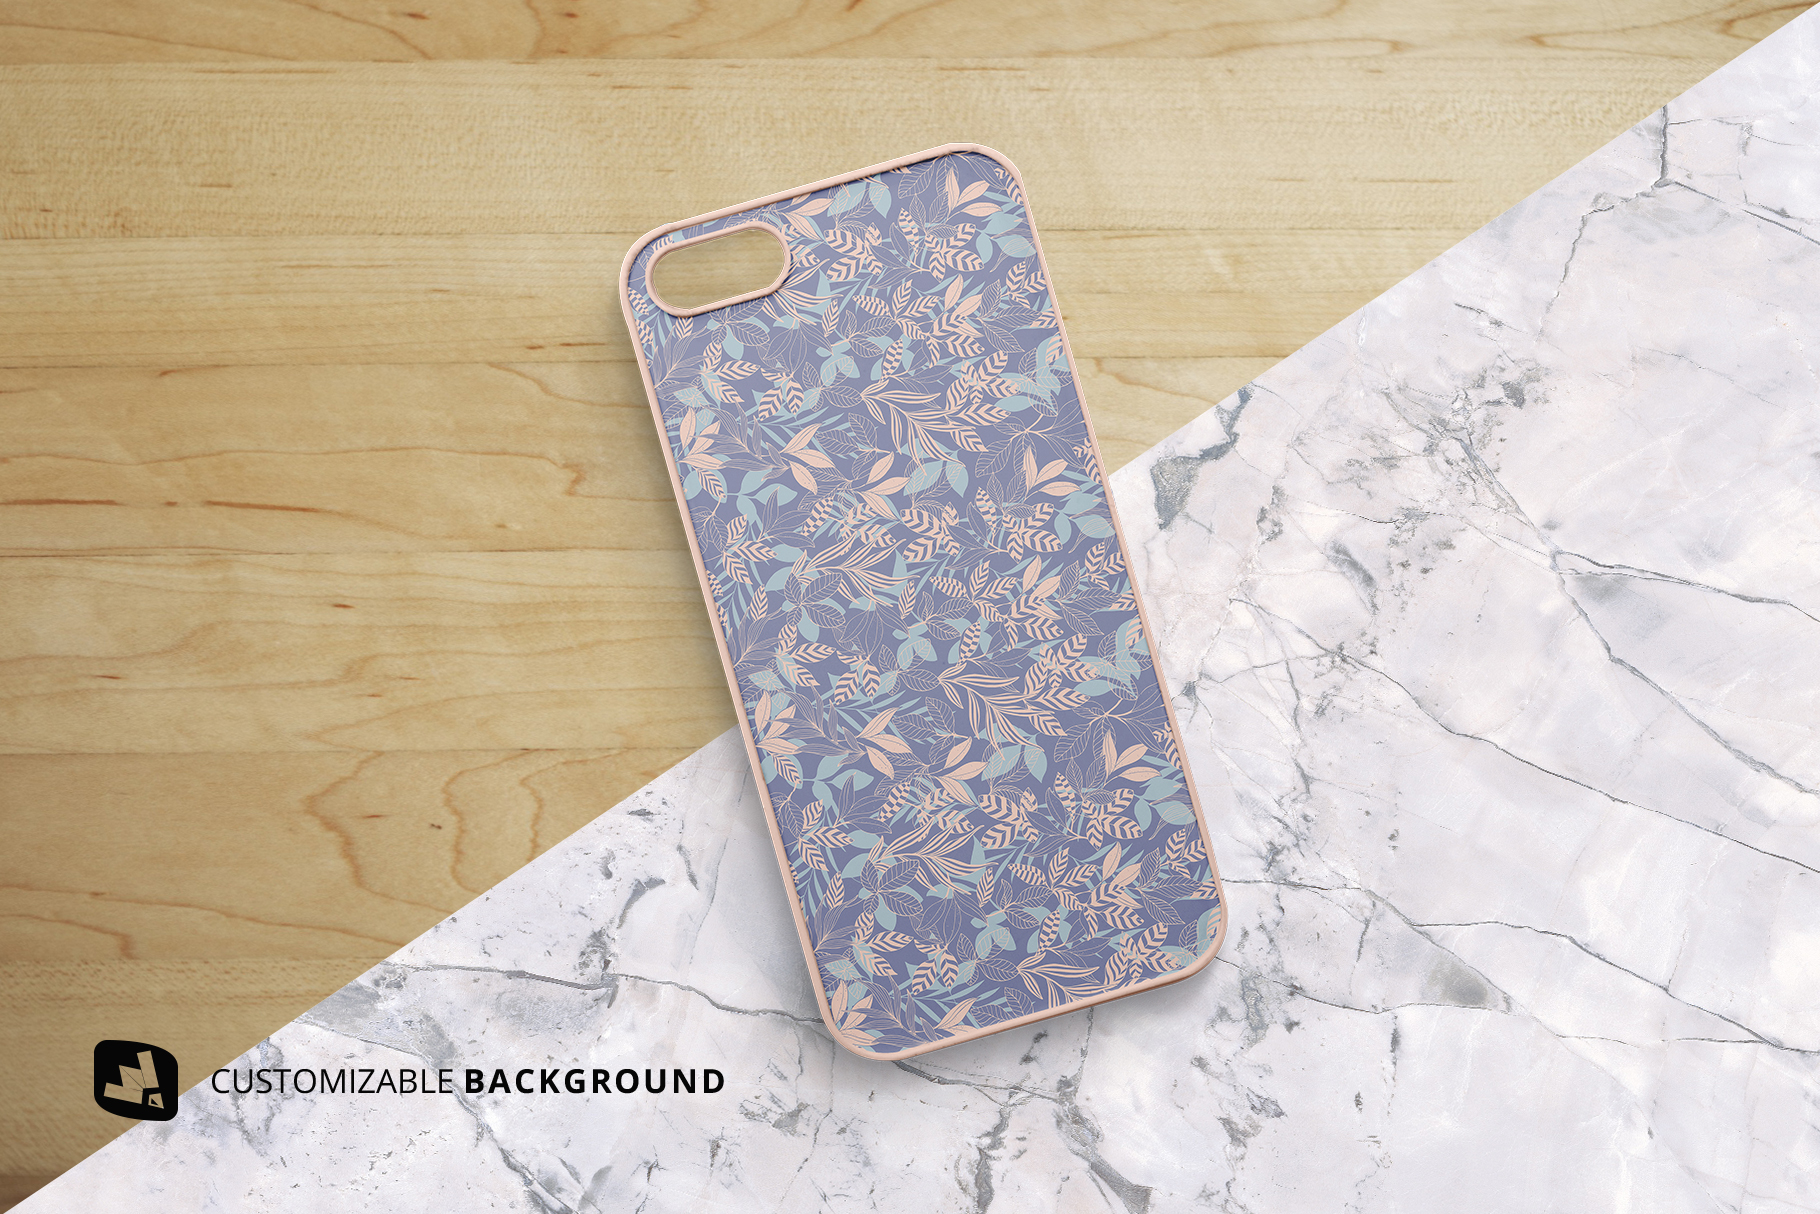 background options of the top view phone case mockup